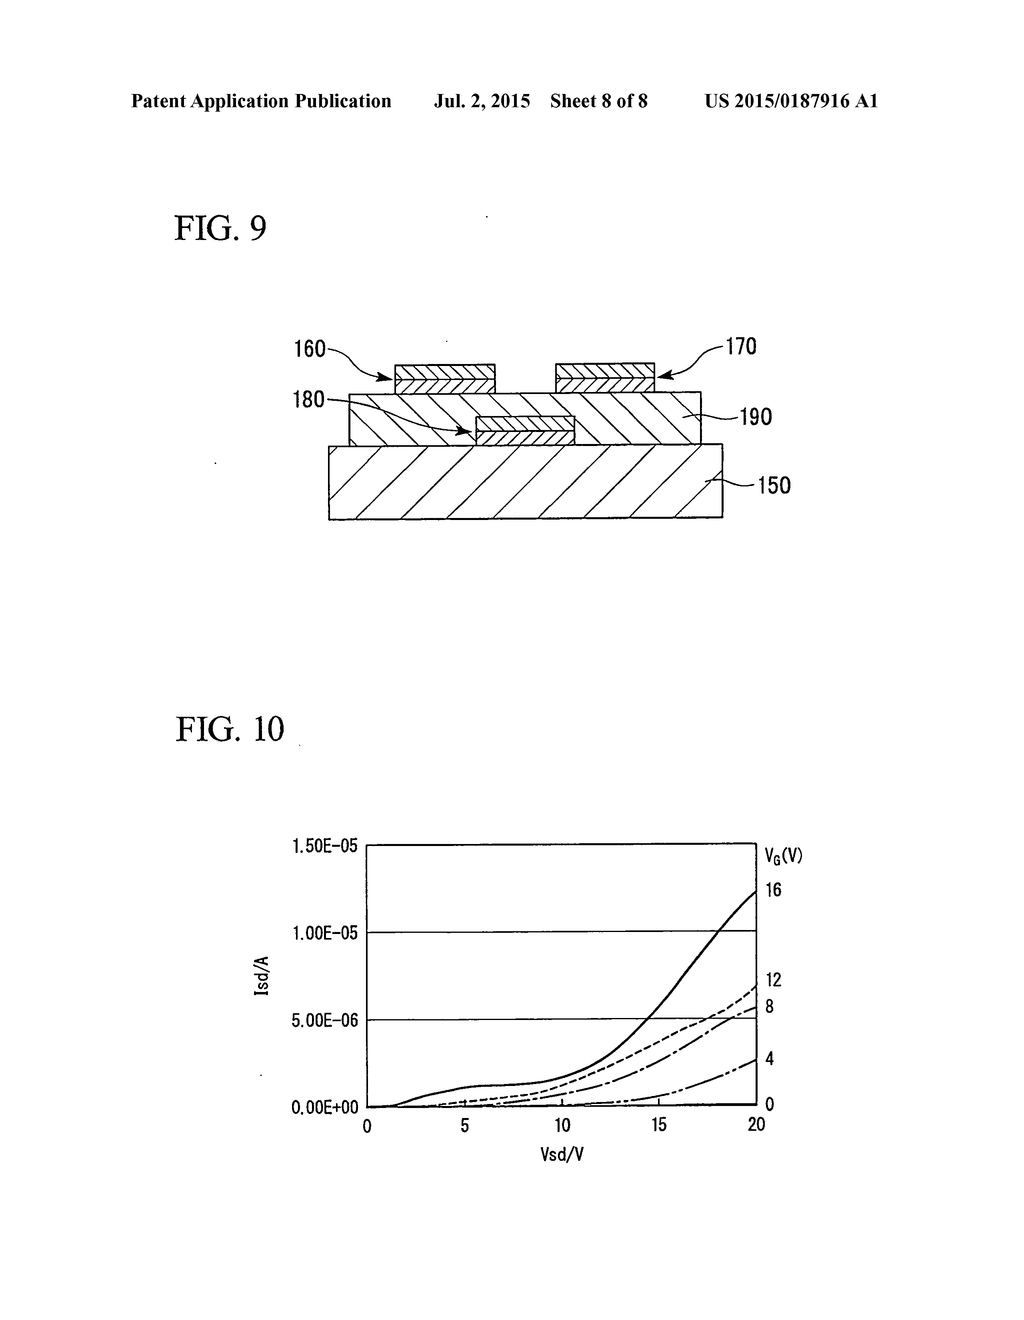 ... METHOD OF MANUFACTURING THIN FILM TRANSISTOR, ZINC OXIDE THIN FILM,  THIN FILM TRANSISTOR, AND TRANSPARENT OXIDE WIRING - diagram, schematic,  and image ...